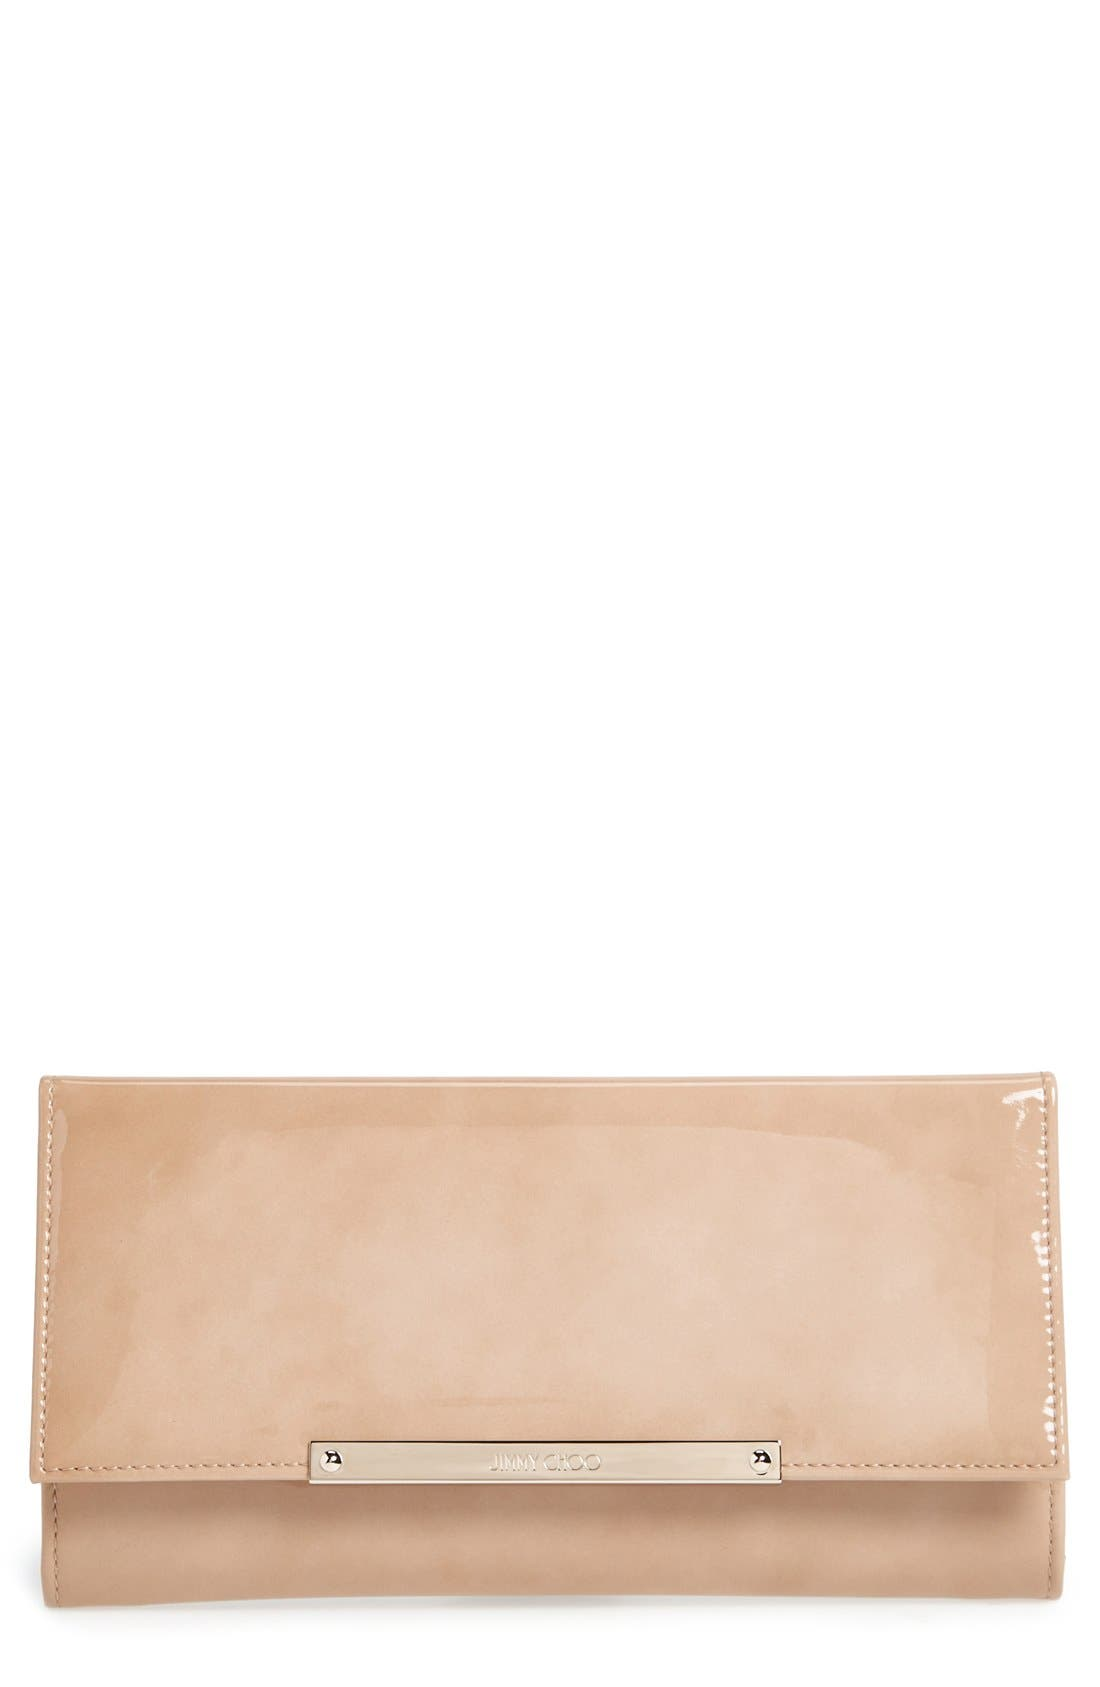 Alternate Image 1 Selected - Jimmy Choo 'Marilyn' Patent Clutch